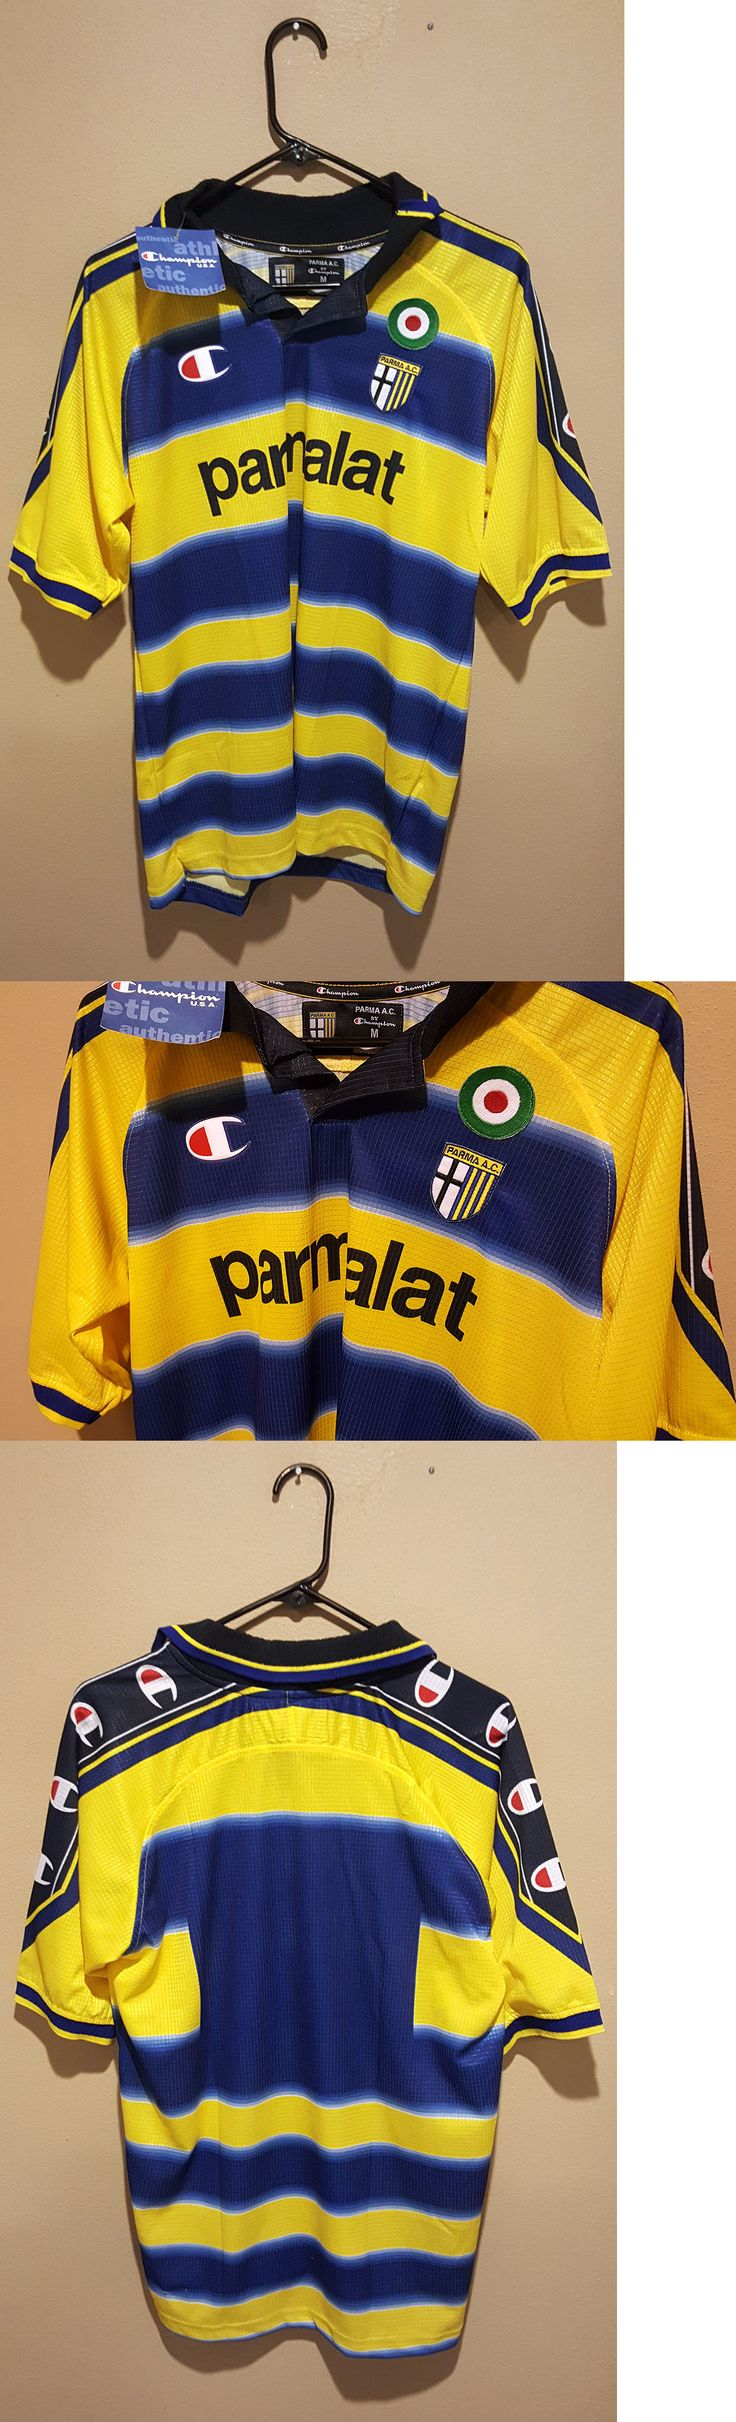 Soccer-International Clubs 2887: Rare And New Parma Fc Home Kit 99 00 - [Medium] -> BUY IT NOW ONLY: $80 on eBay!